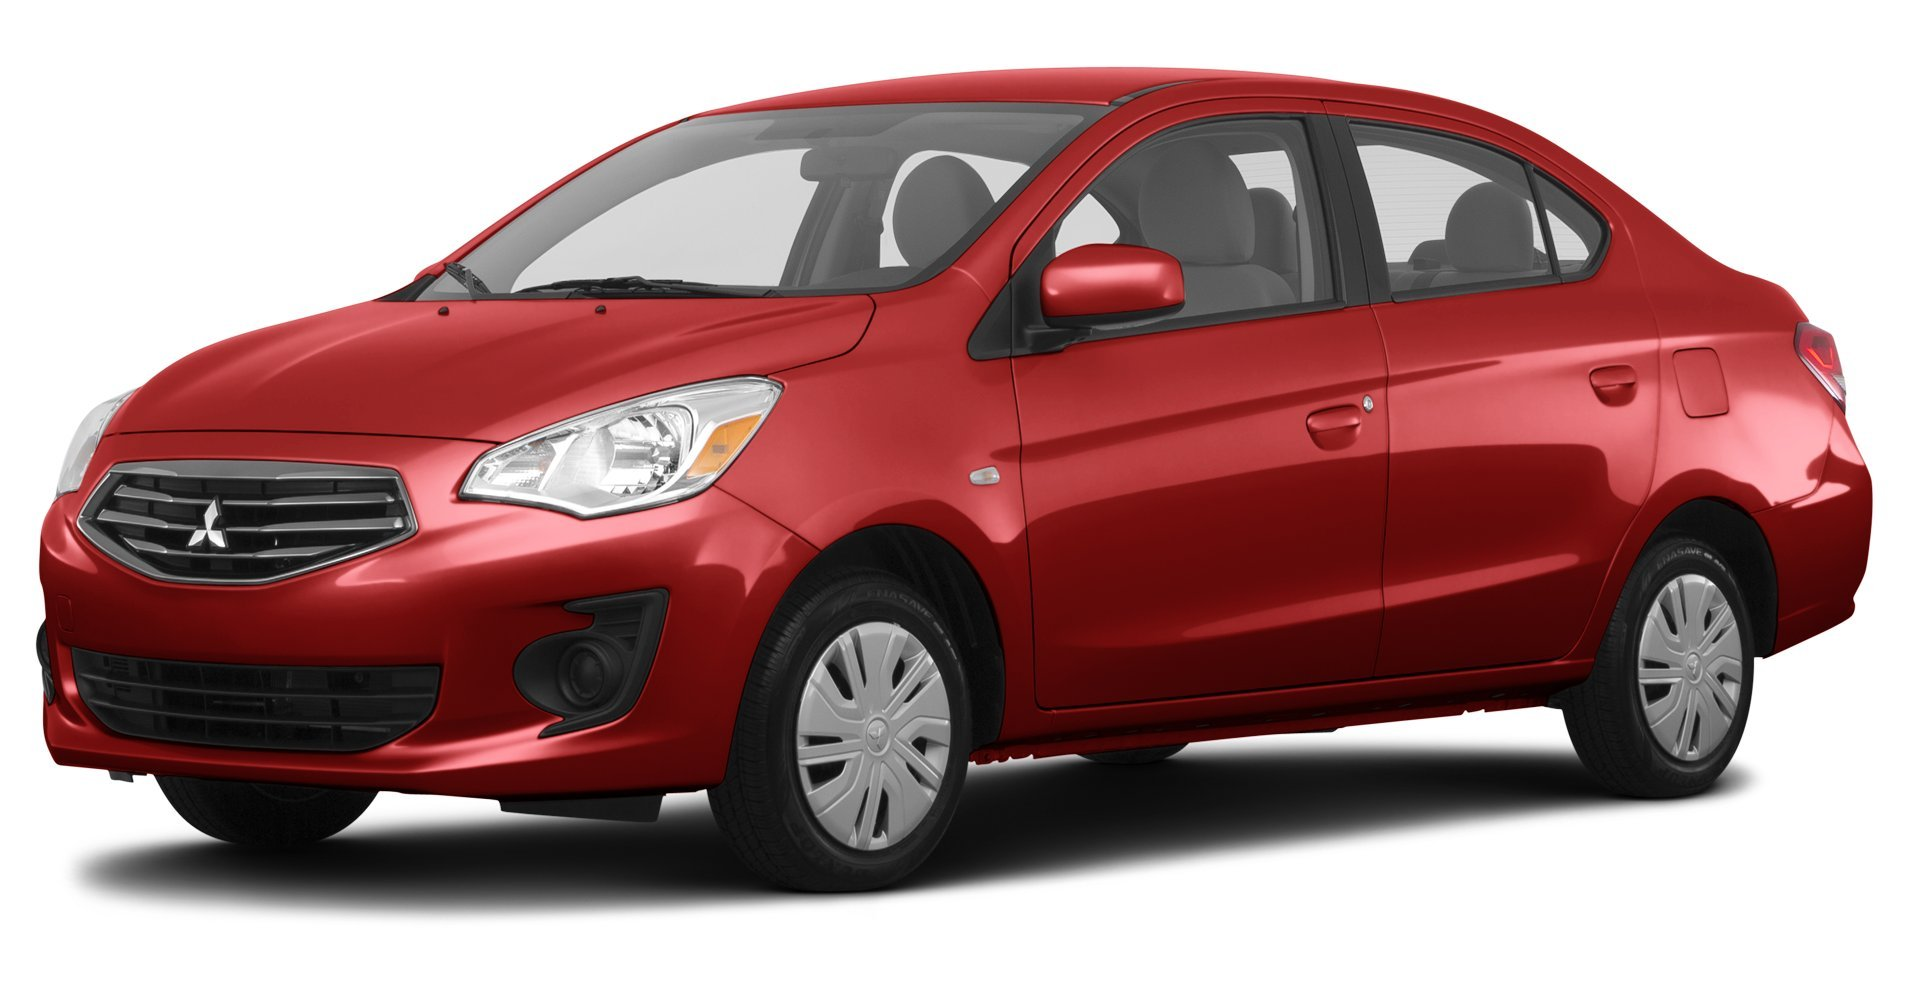 Amazon.com: 2017 Mitsubishi Mirage G4 Reviews, Images, And